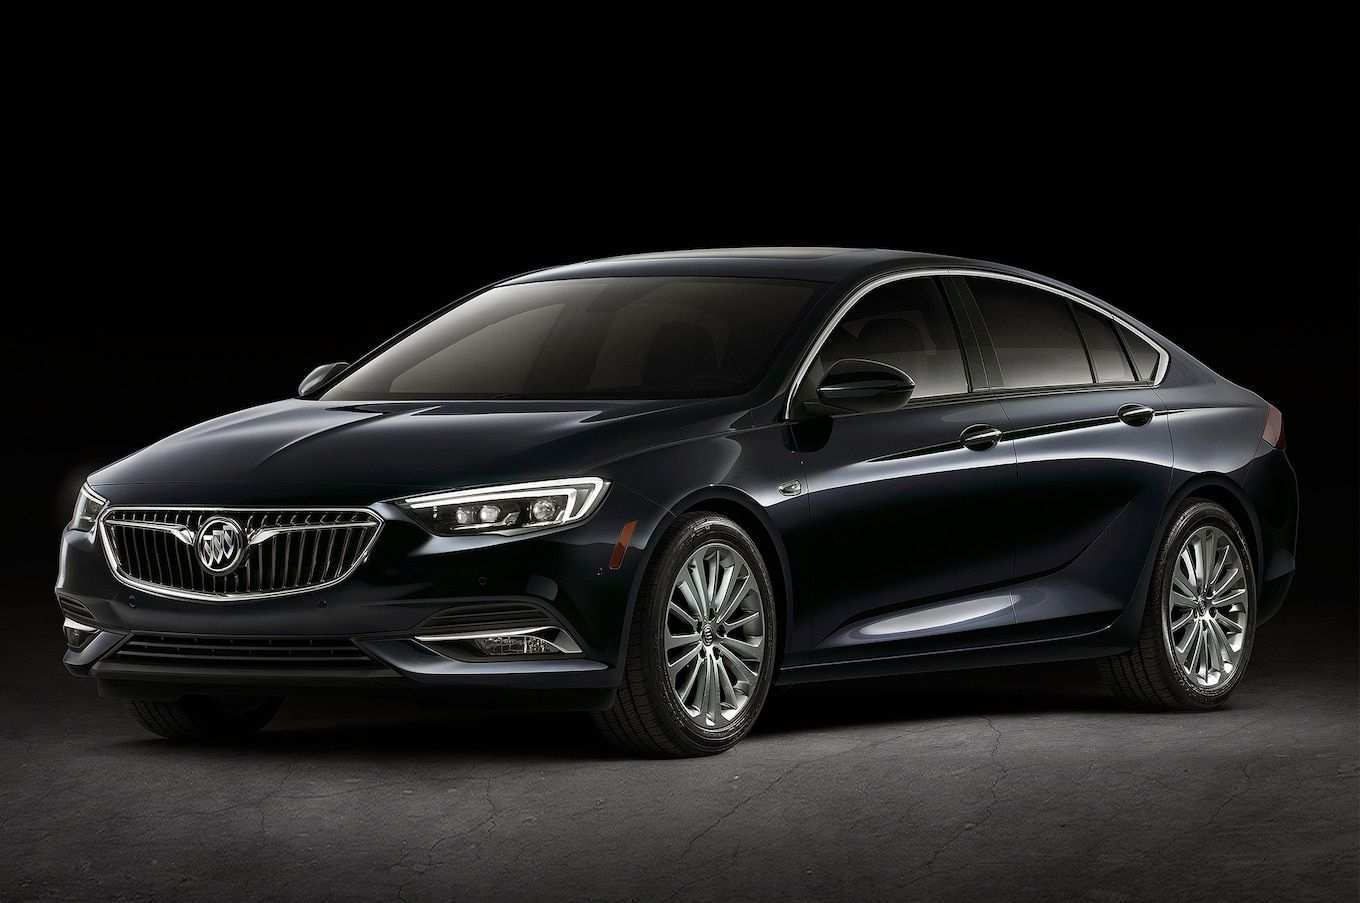 44 Concept of 2020 Buick Regal Engine by 2020 Buick Regal